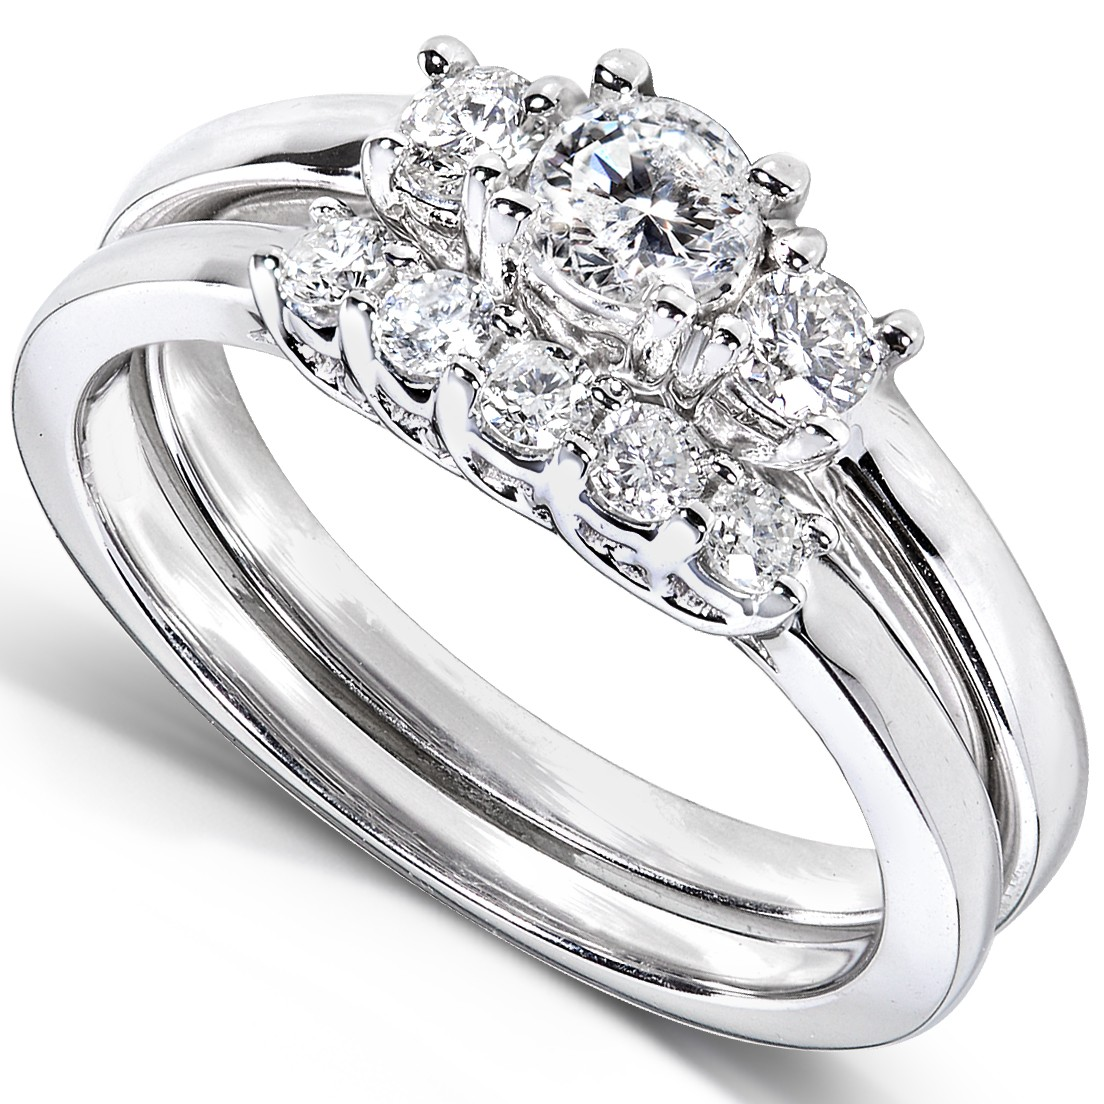 : diamond set wedding rings